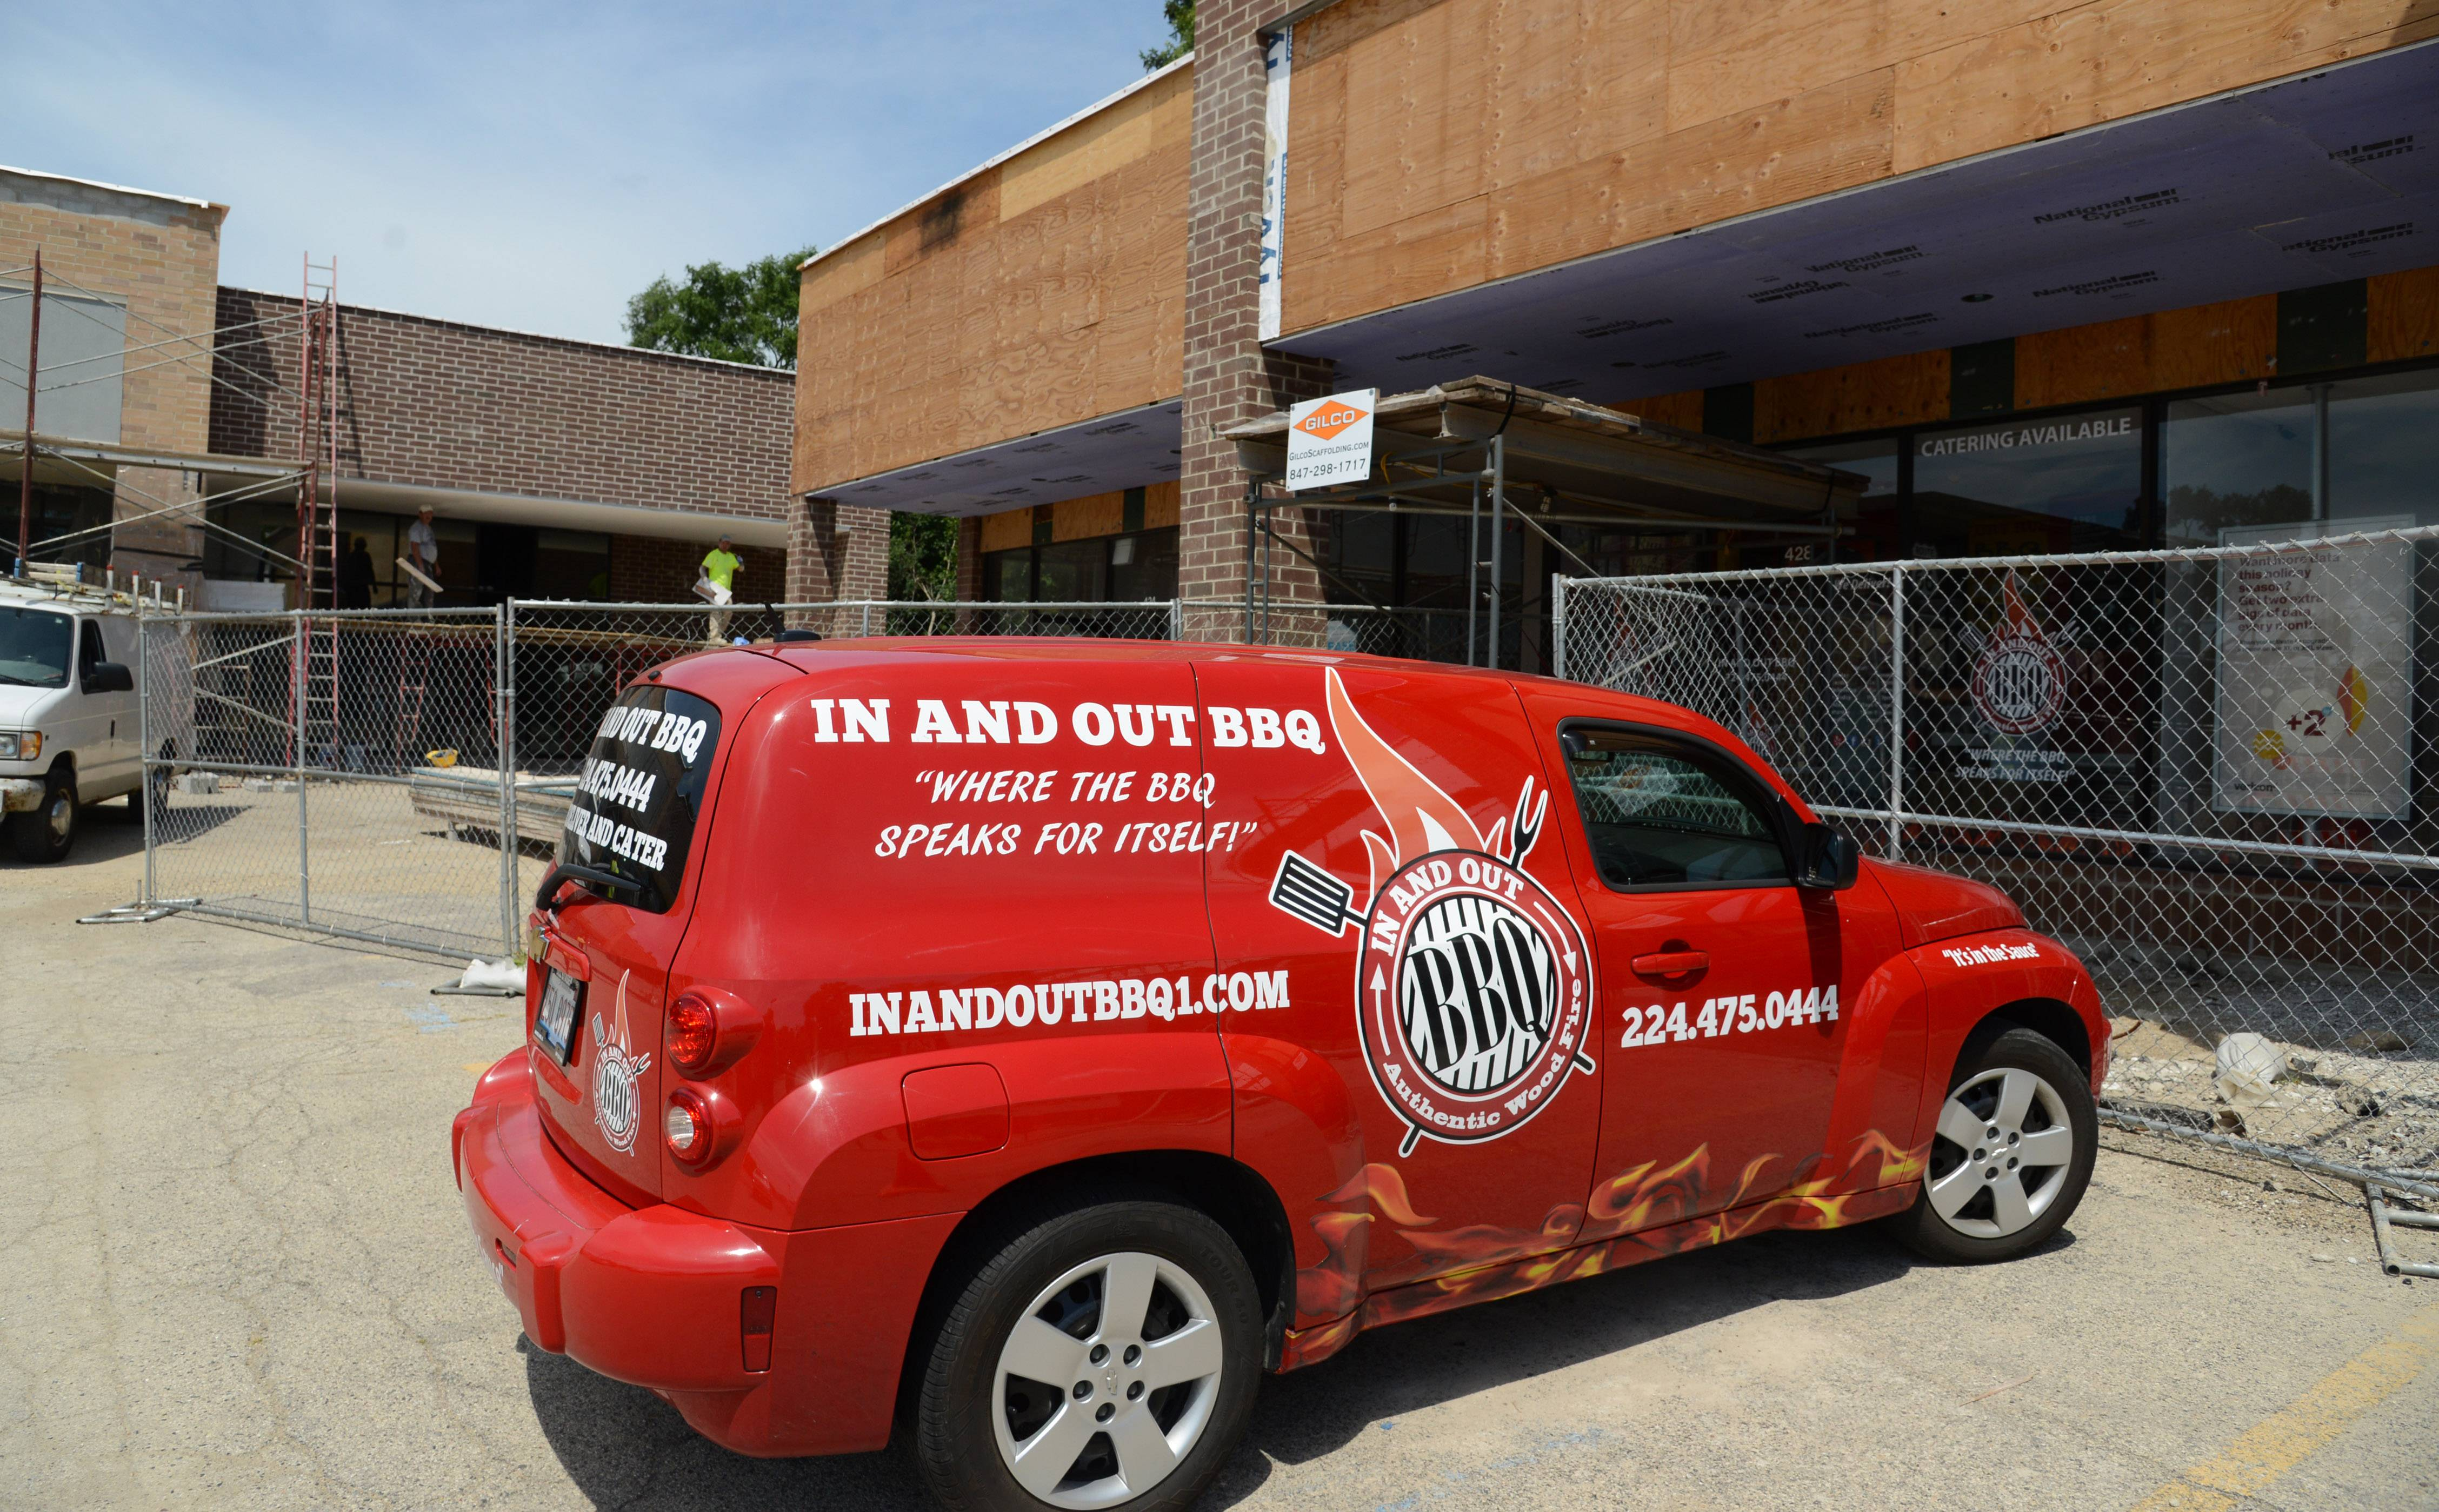 The owner of In and Out BBQ in Mundelein plans to hold a grand opening once construction is complete at Hawley Lake Plaza.